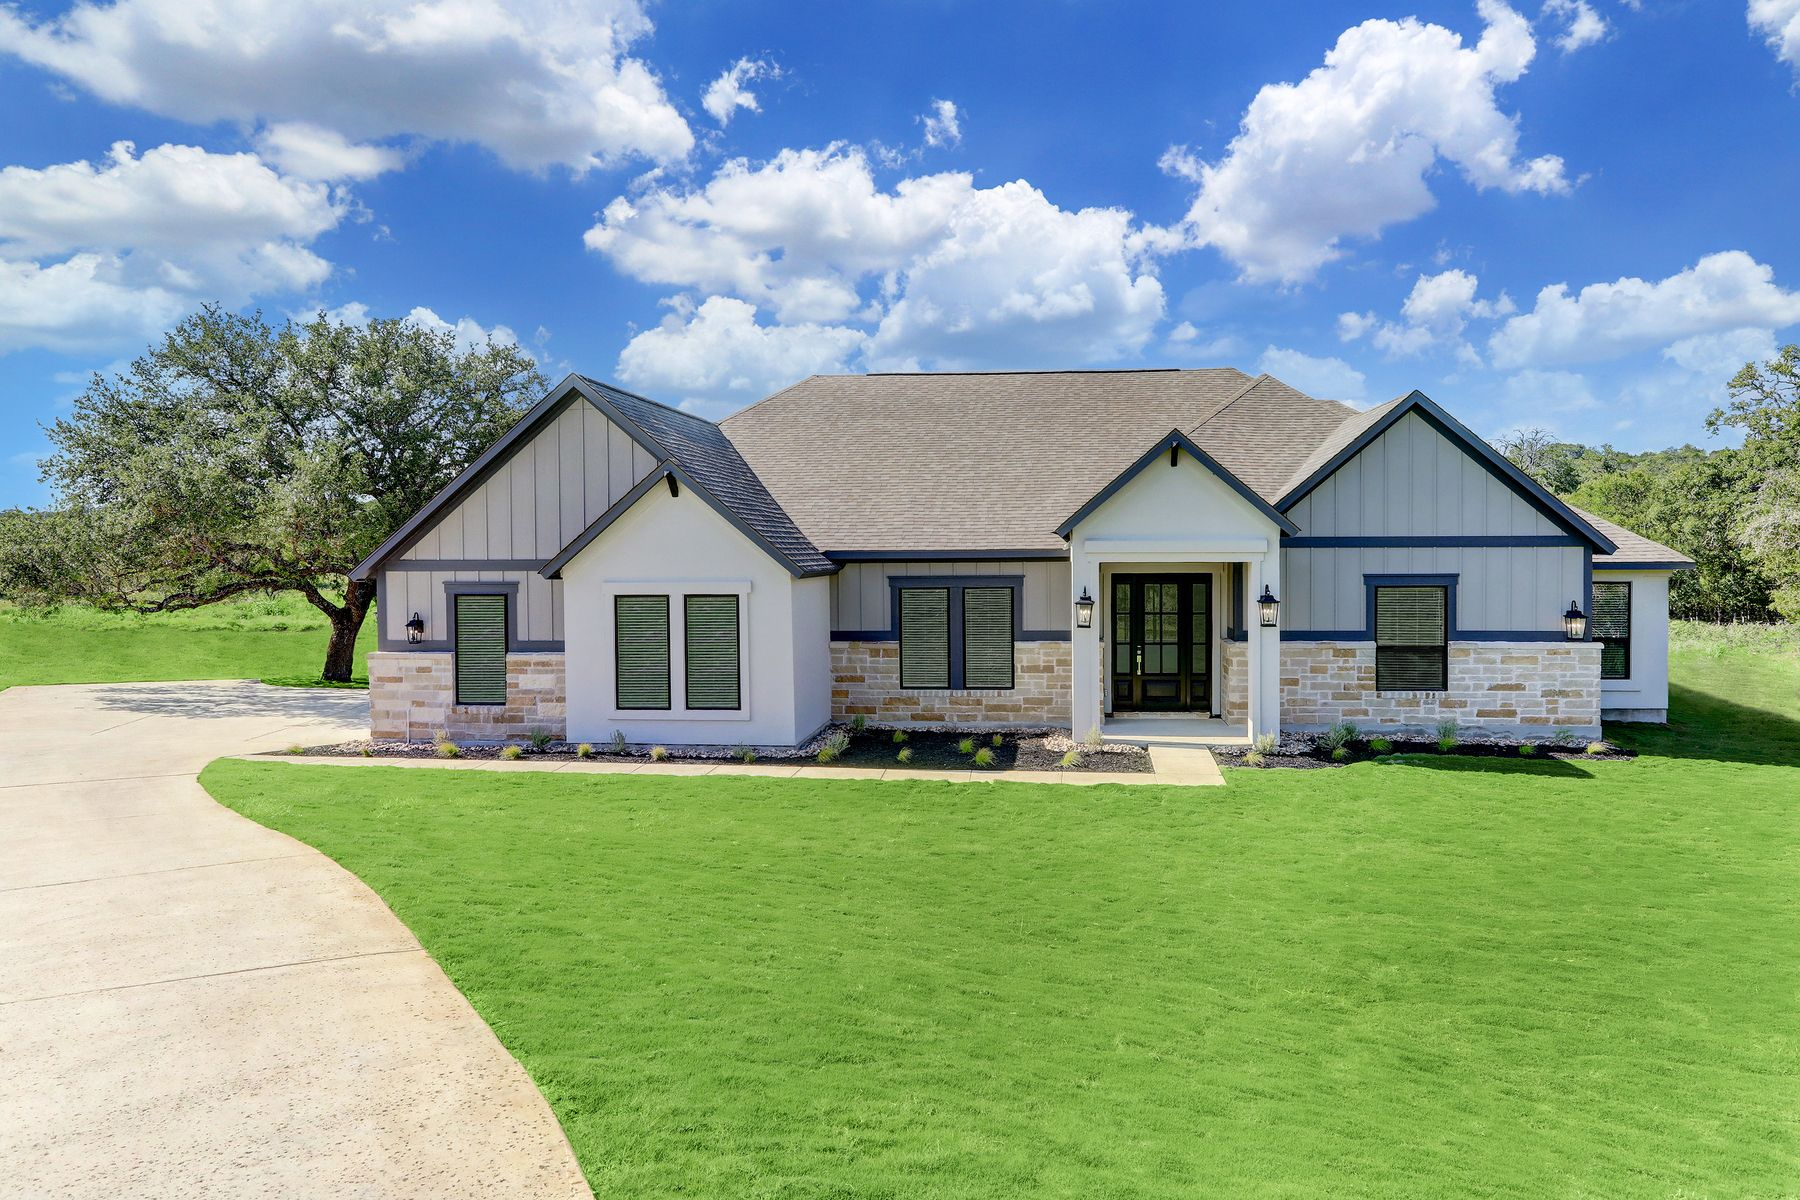 The Mantle Plan by Terrata Homes:This home is brimming with hill country charm and curb appeal.